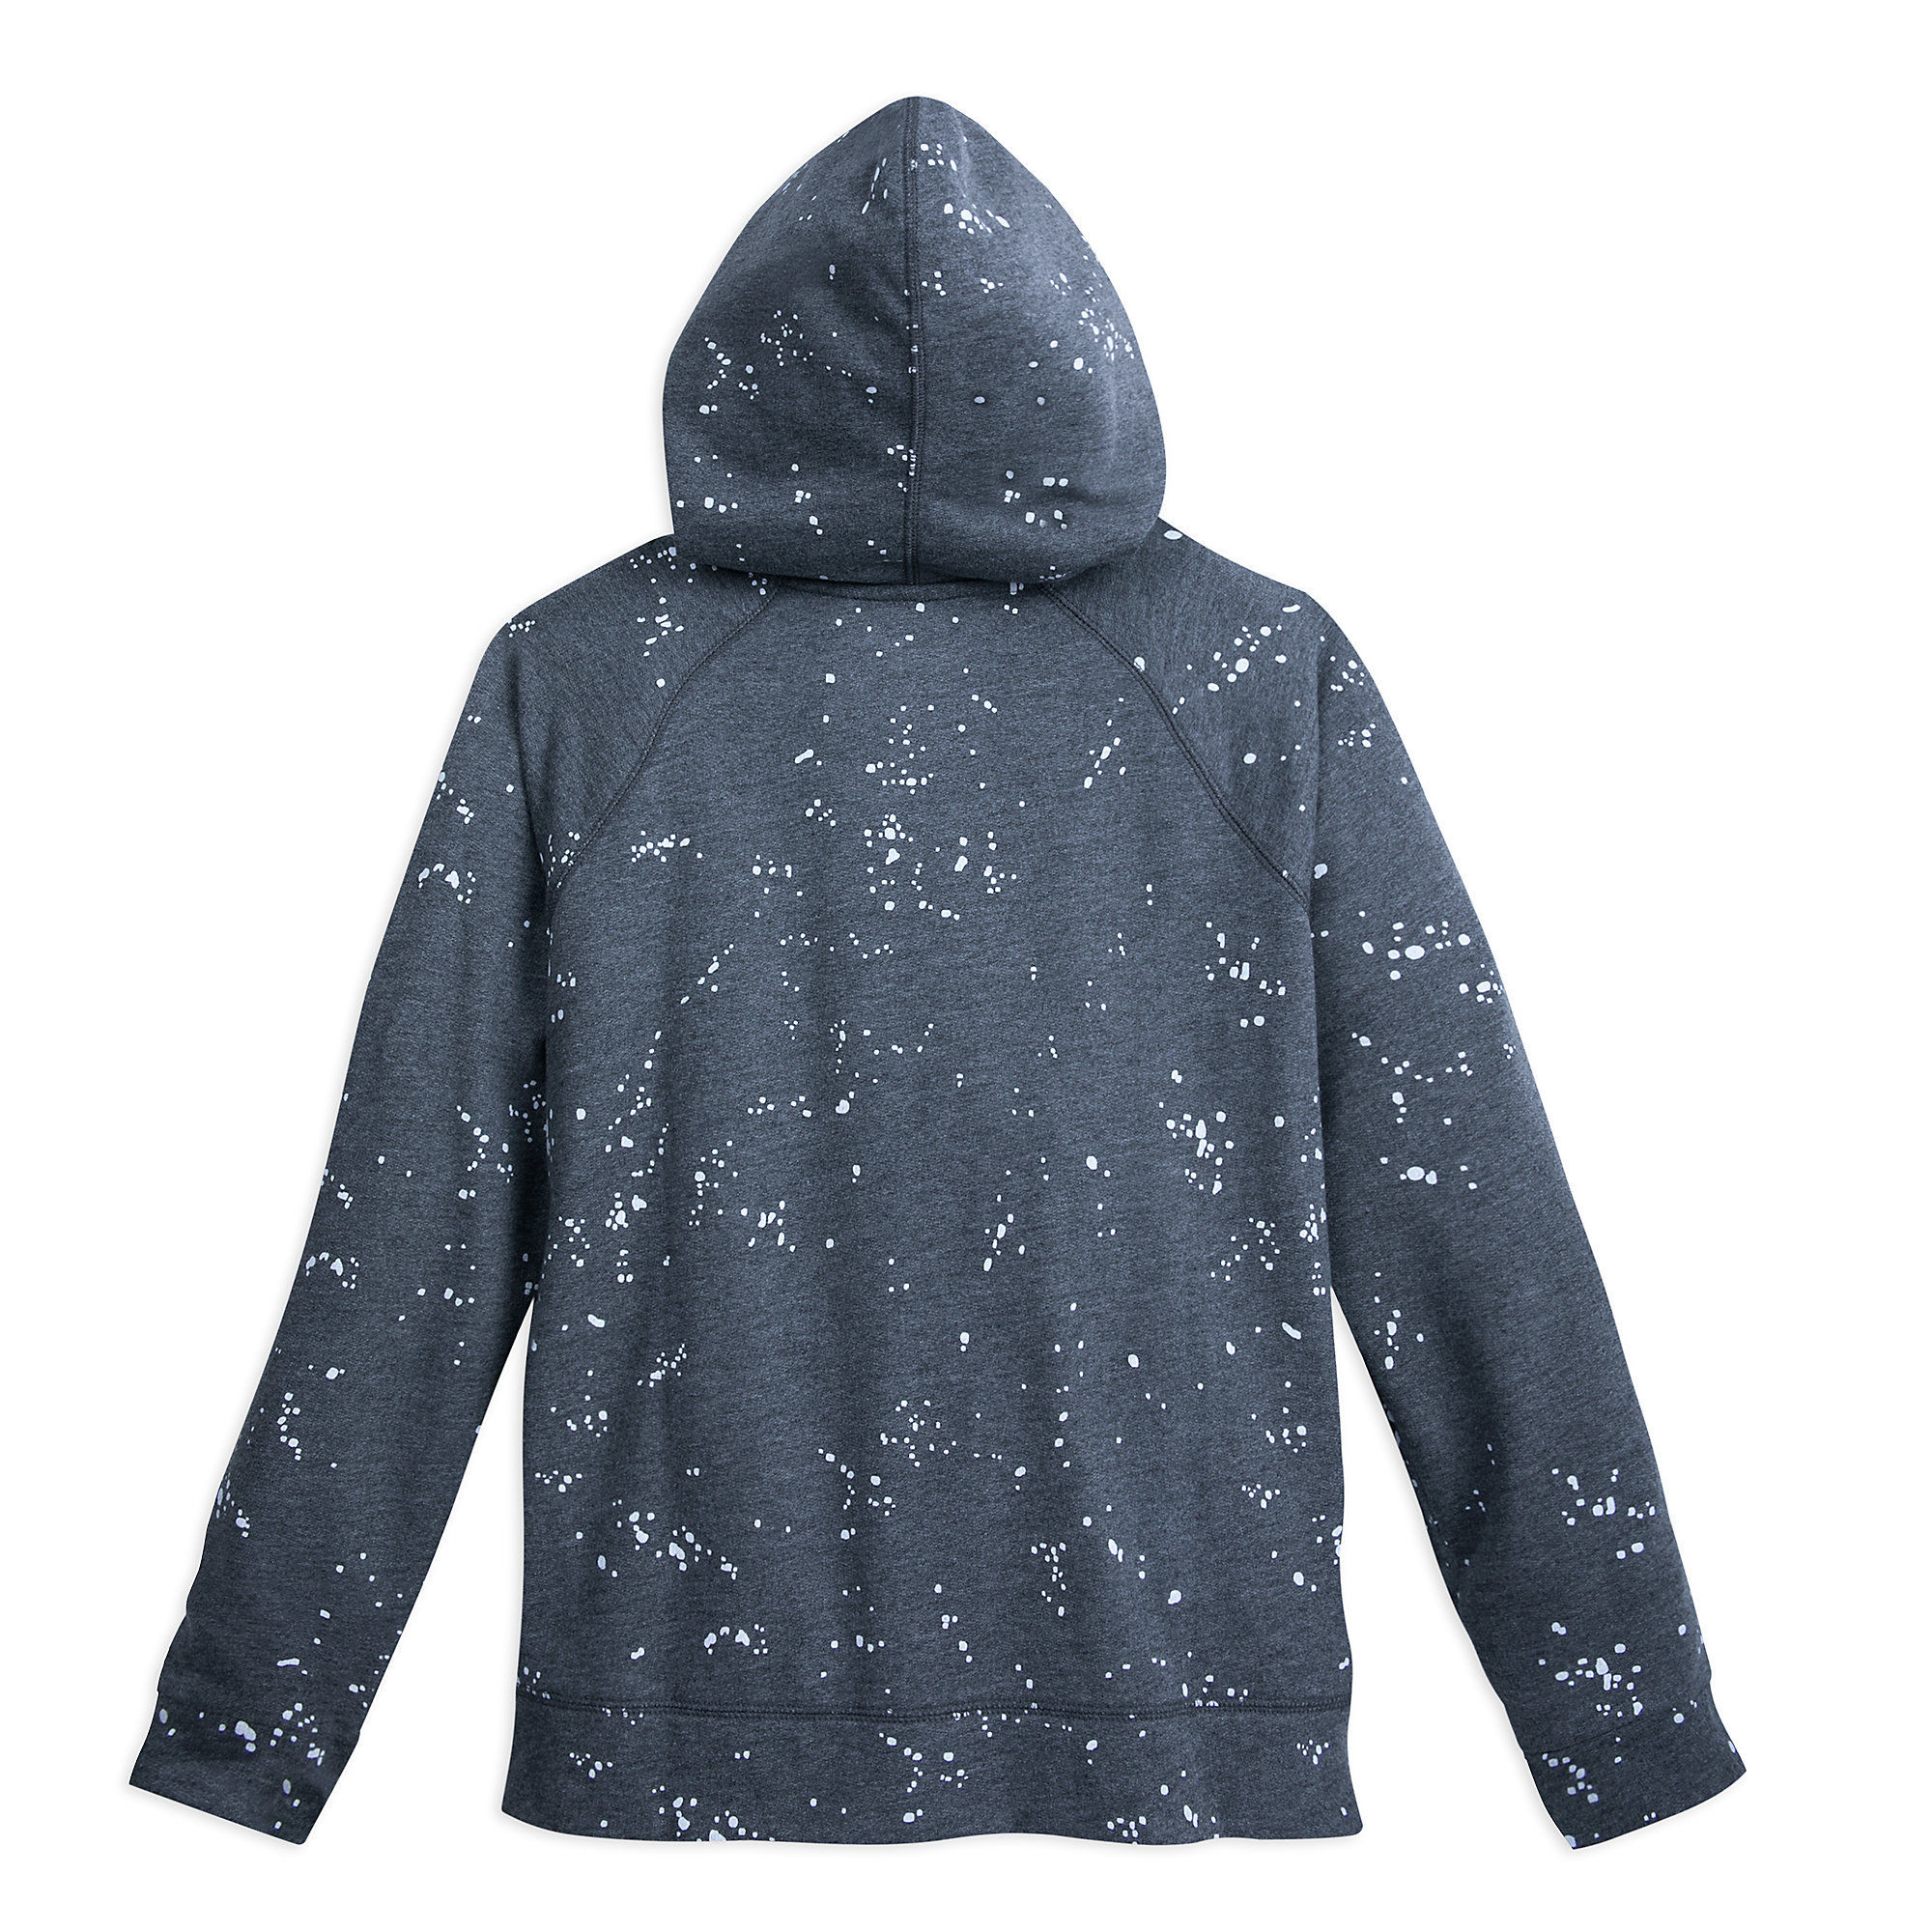 Women's Star Wars Logo Pullover Hoodie at Shop Disney